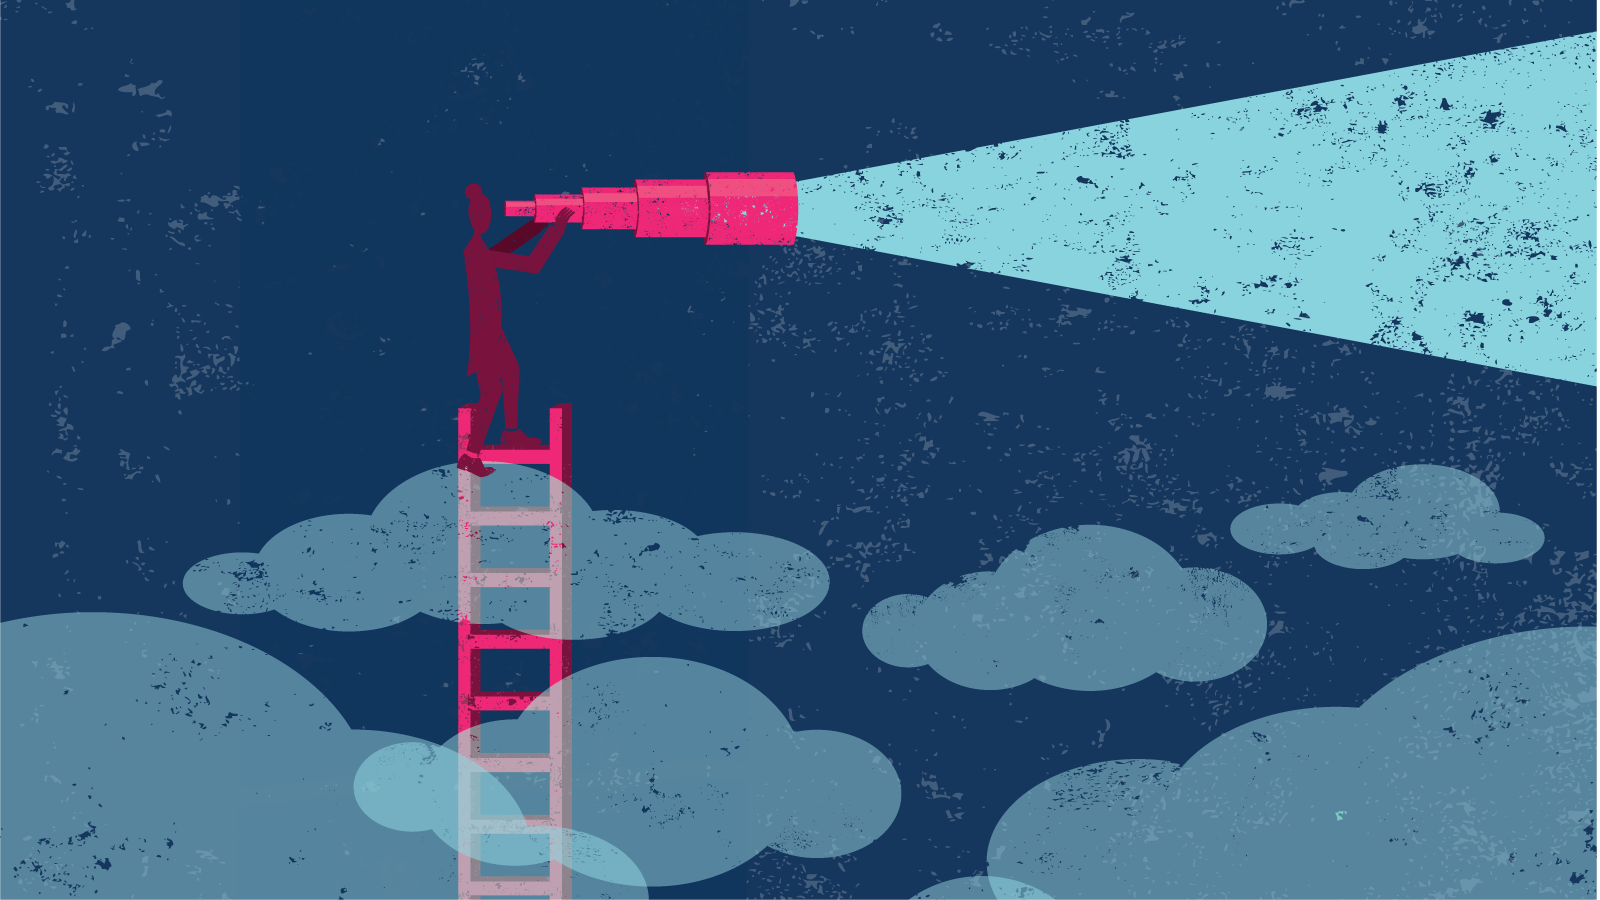 Illustration of person on ladder in the clouds looking through giant telescope.